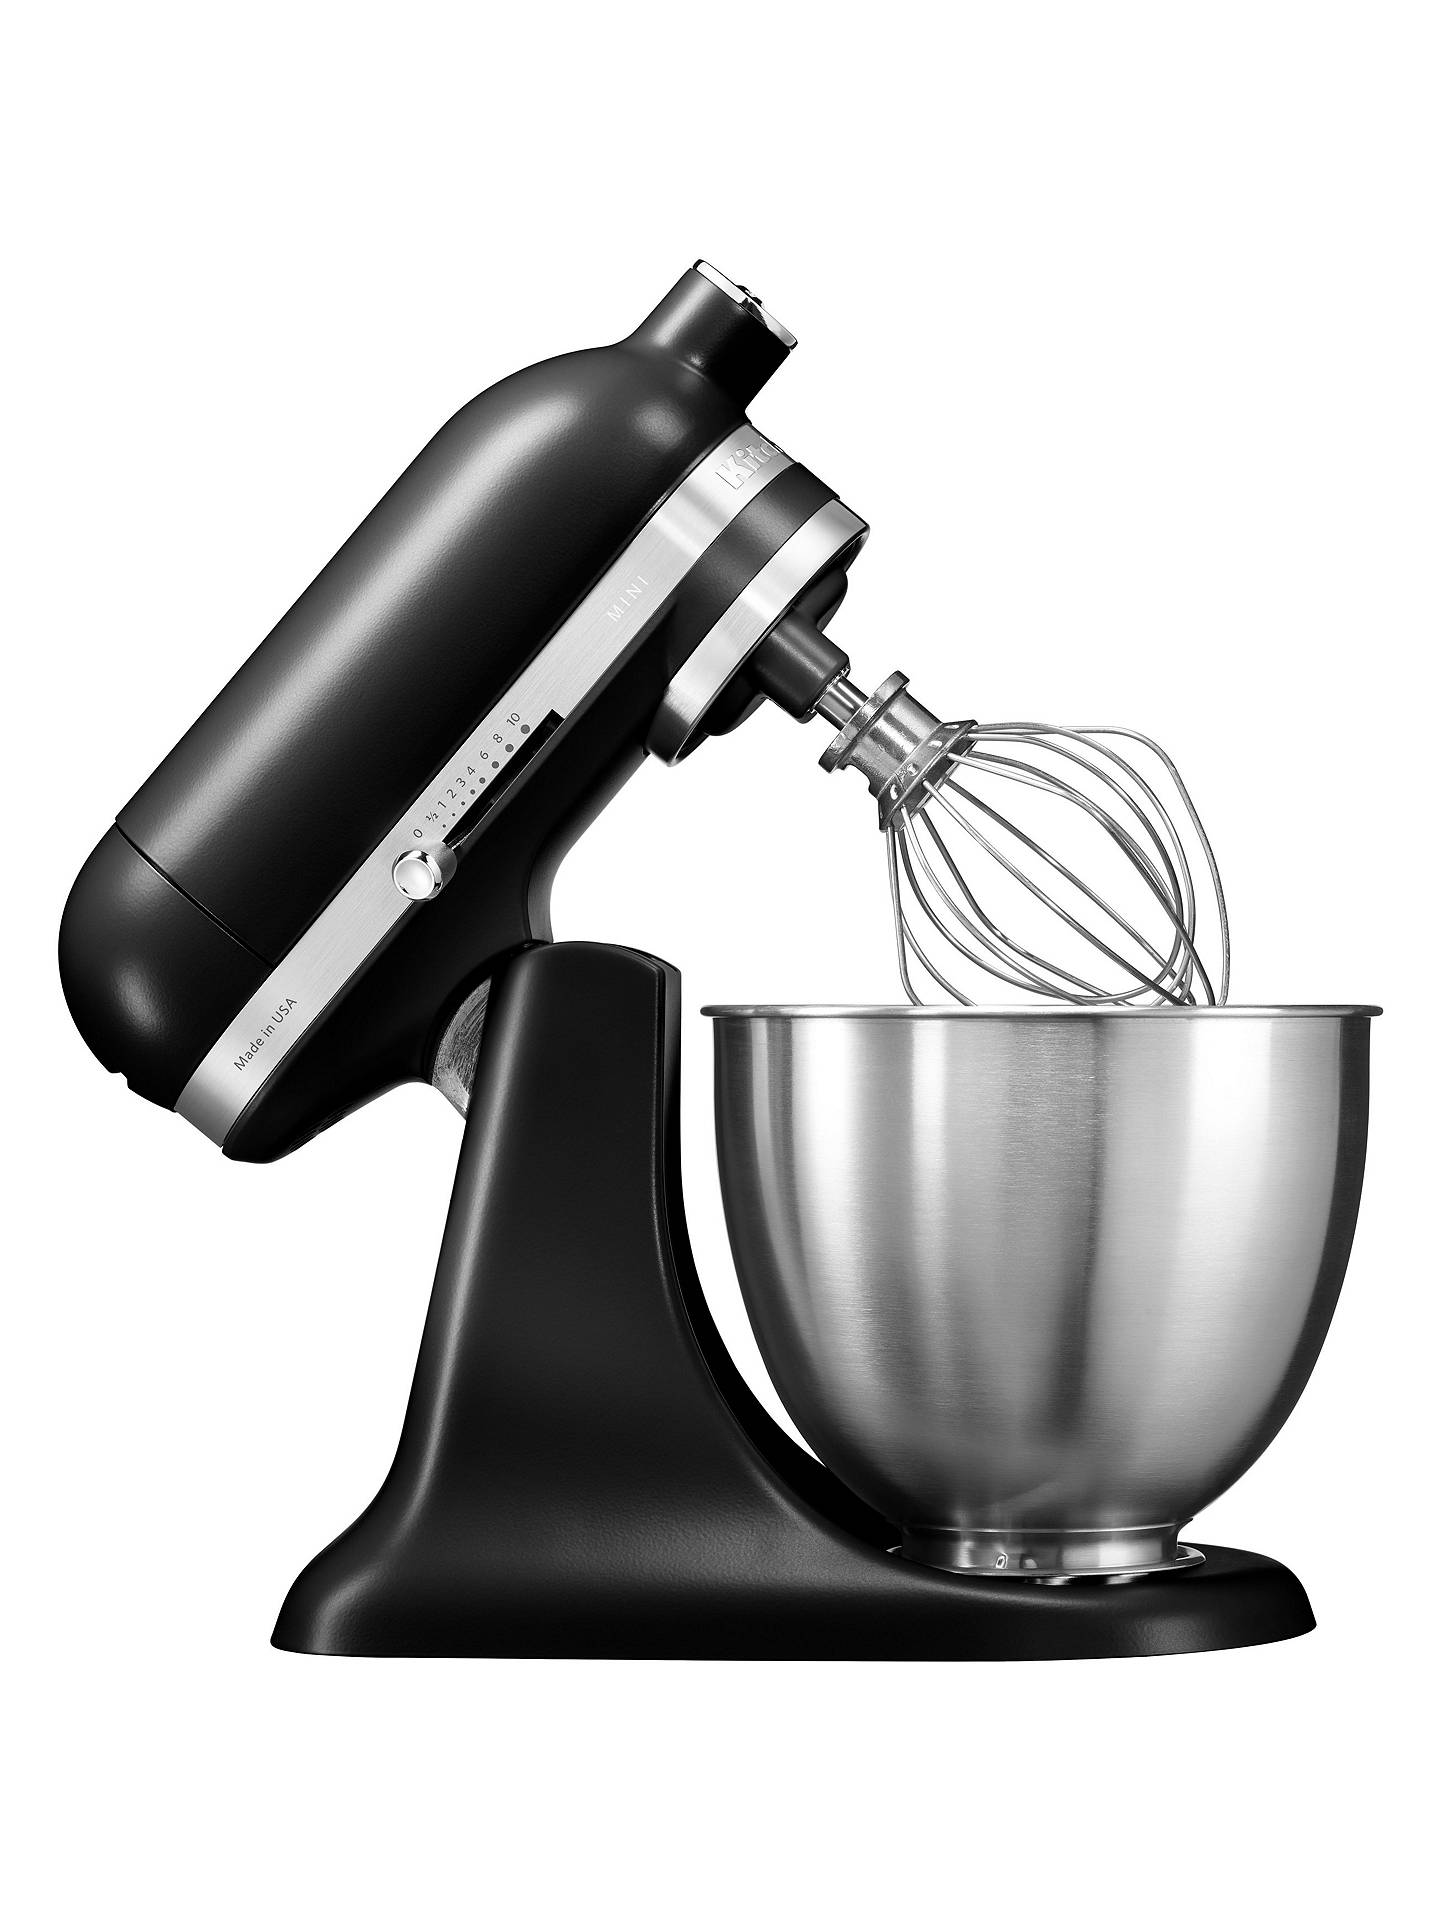 BuyKitchenAid Mini Stand Mixer, Matte Black Online at johnlewis.com